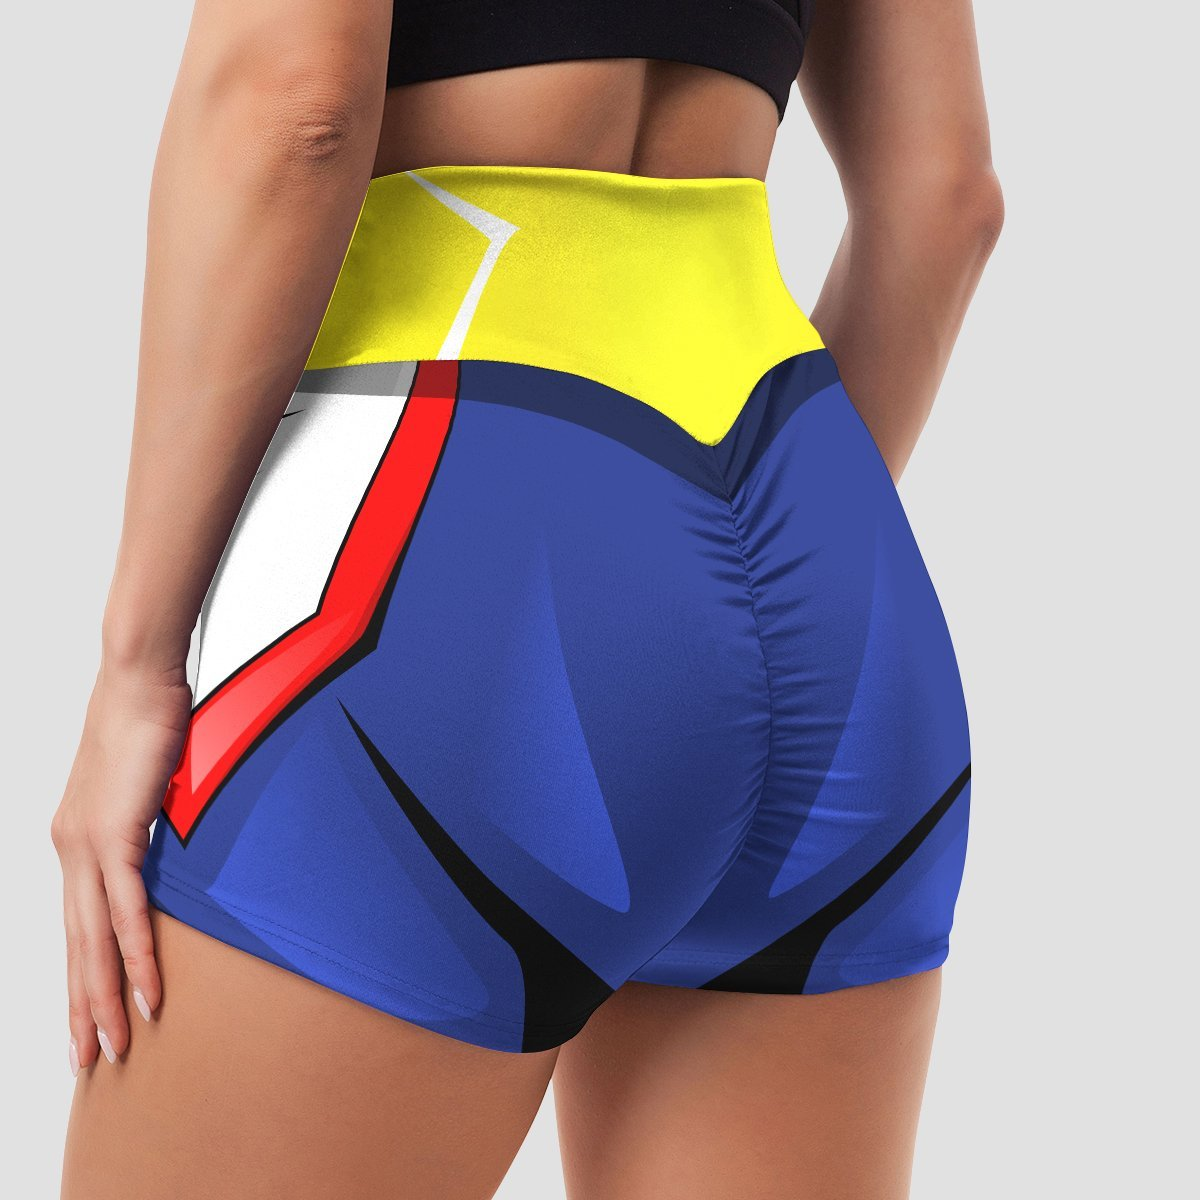 ua high all might active wear set 485128 - Anime Swimsuits